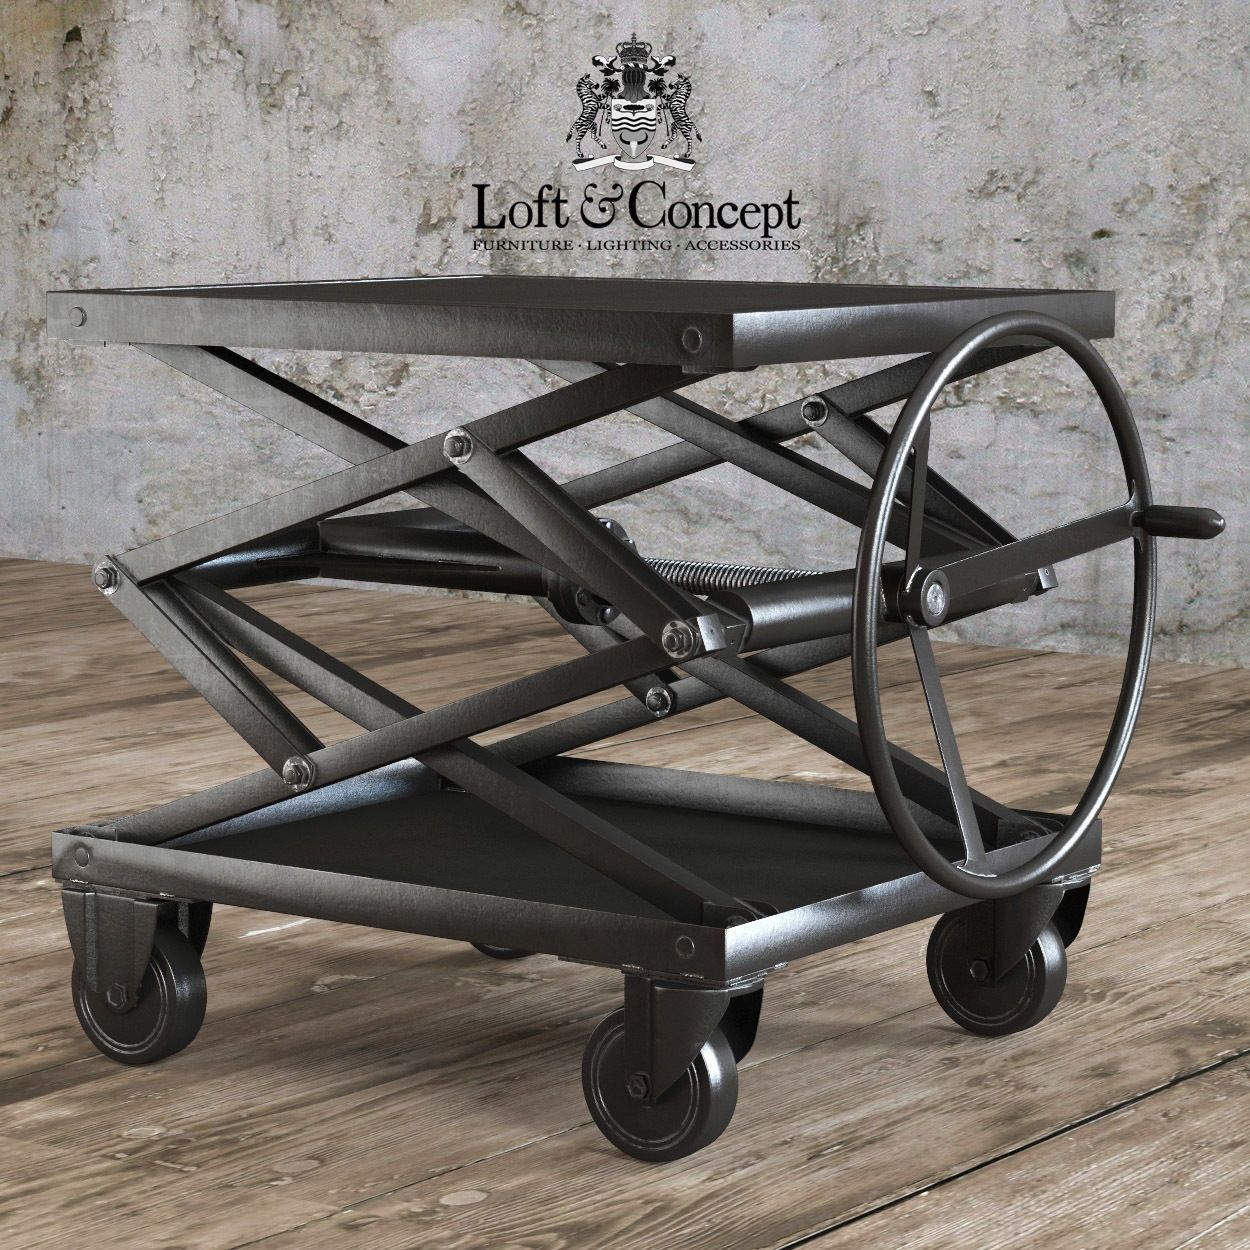 Industrial scissor lift coffee table httptherapybychance industrial scissor lift coffee table geotapseo Choice Image